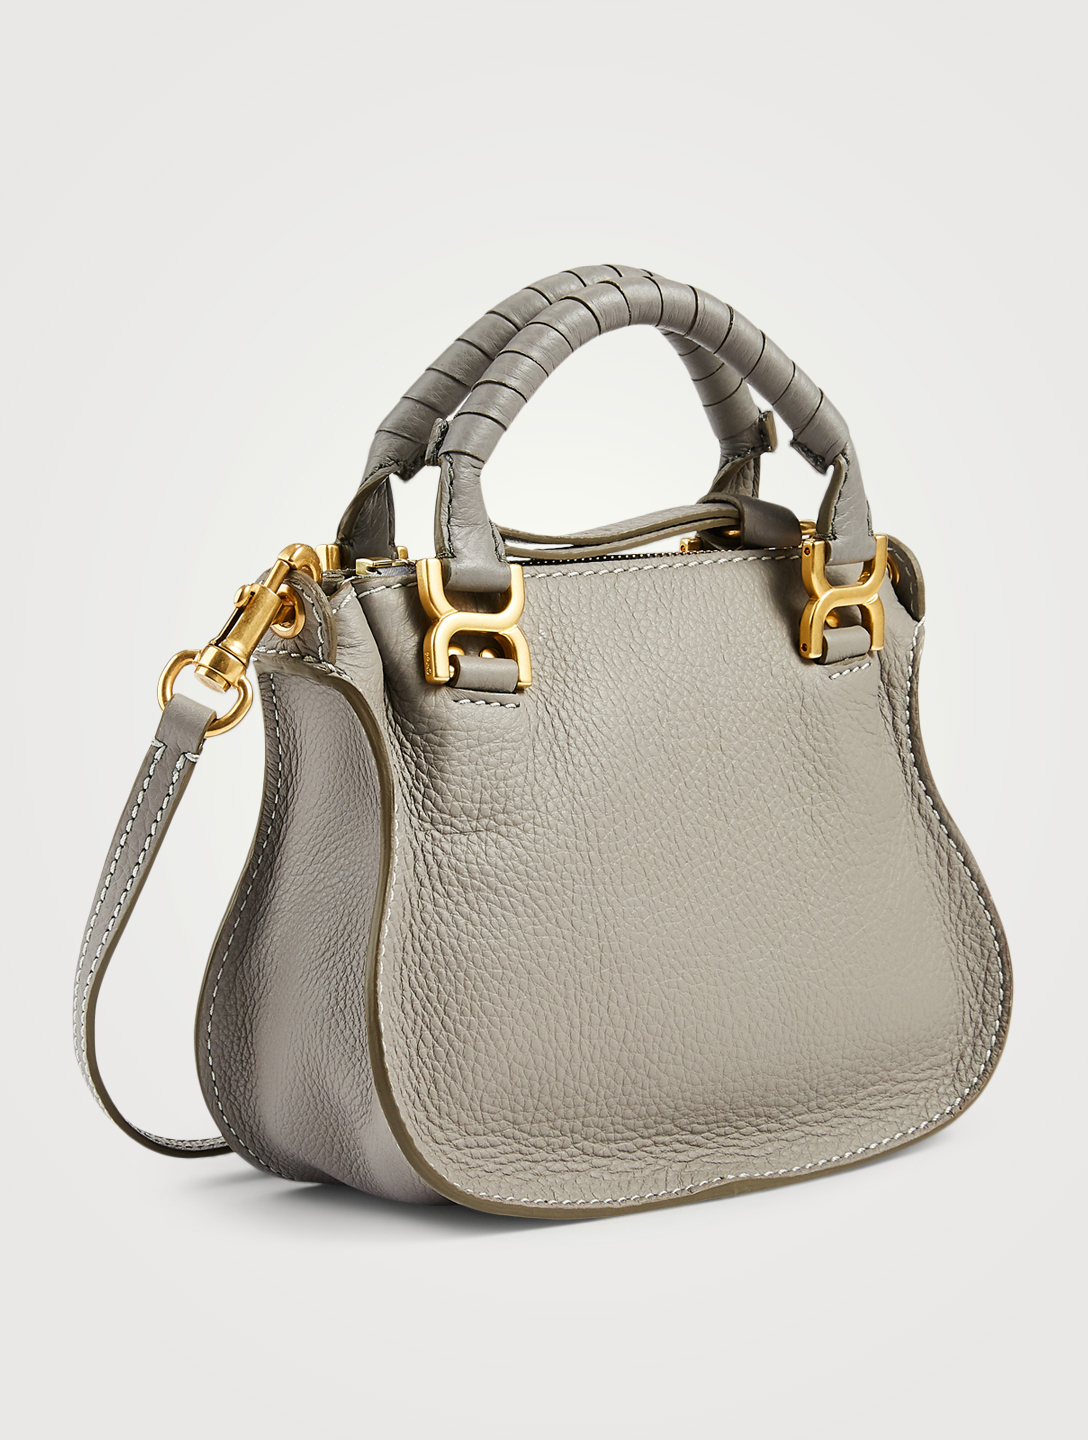 CHLOÉ Mini Marcie Leather Bag Women's Grey